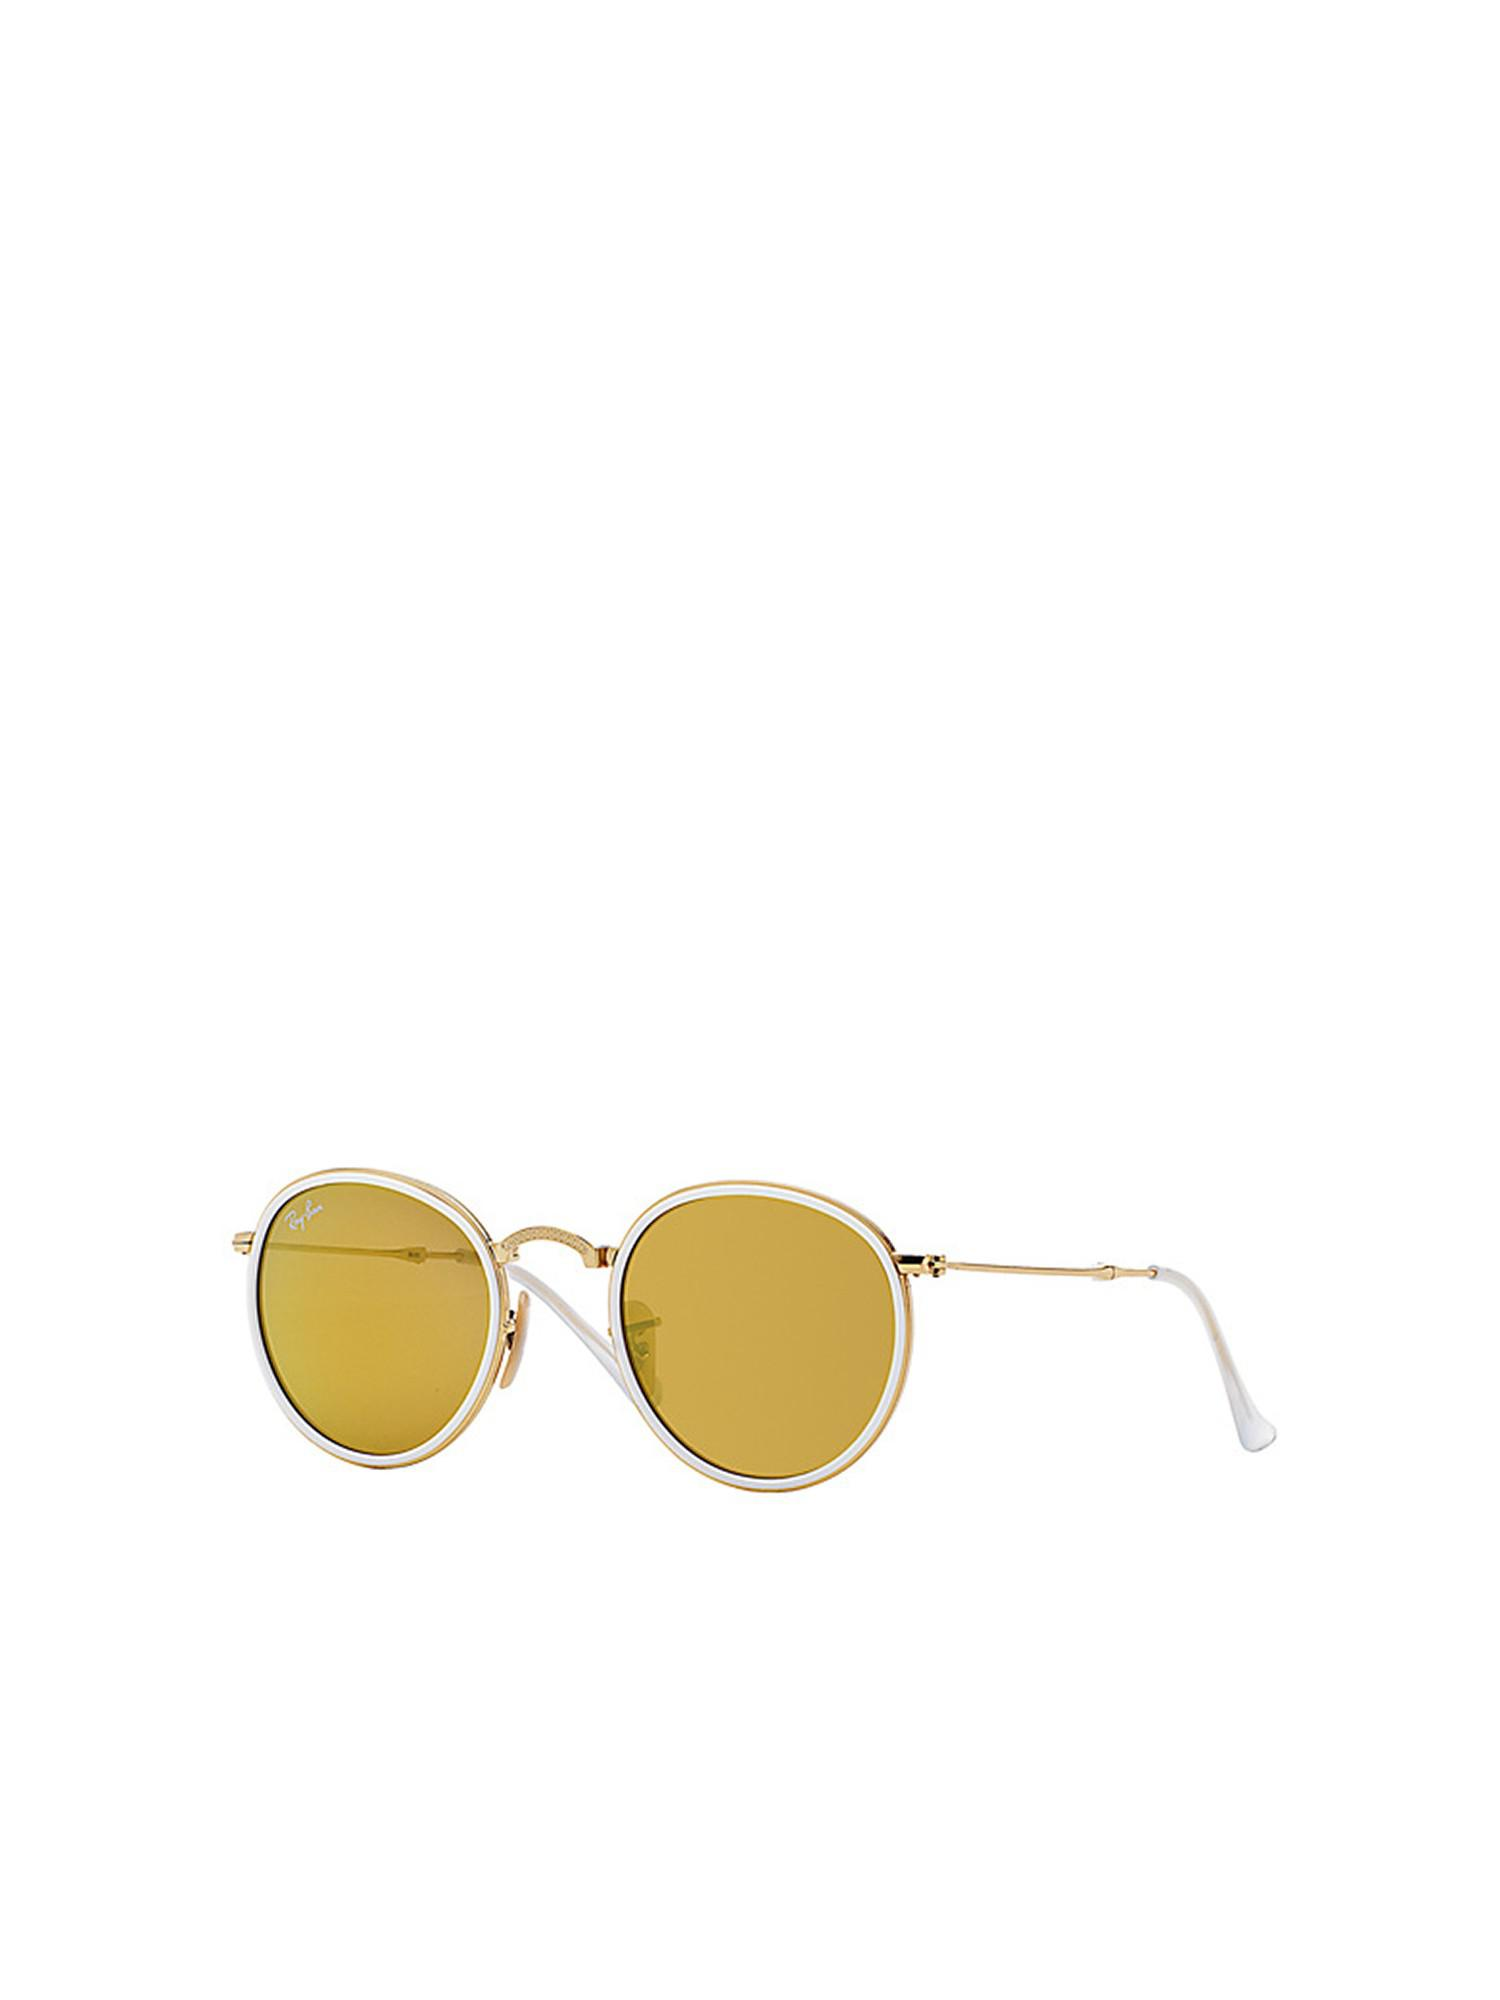 Lyst - Ray-Ban Round Folding rb3517 001 93 51 in Yellow 7c1aa86f54